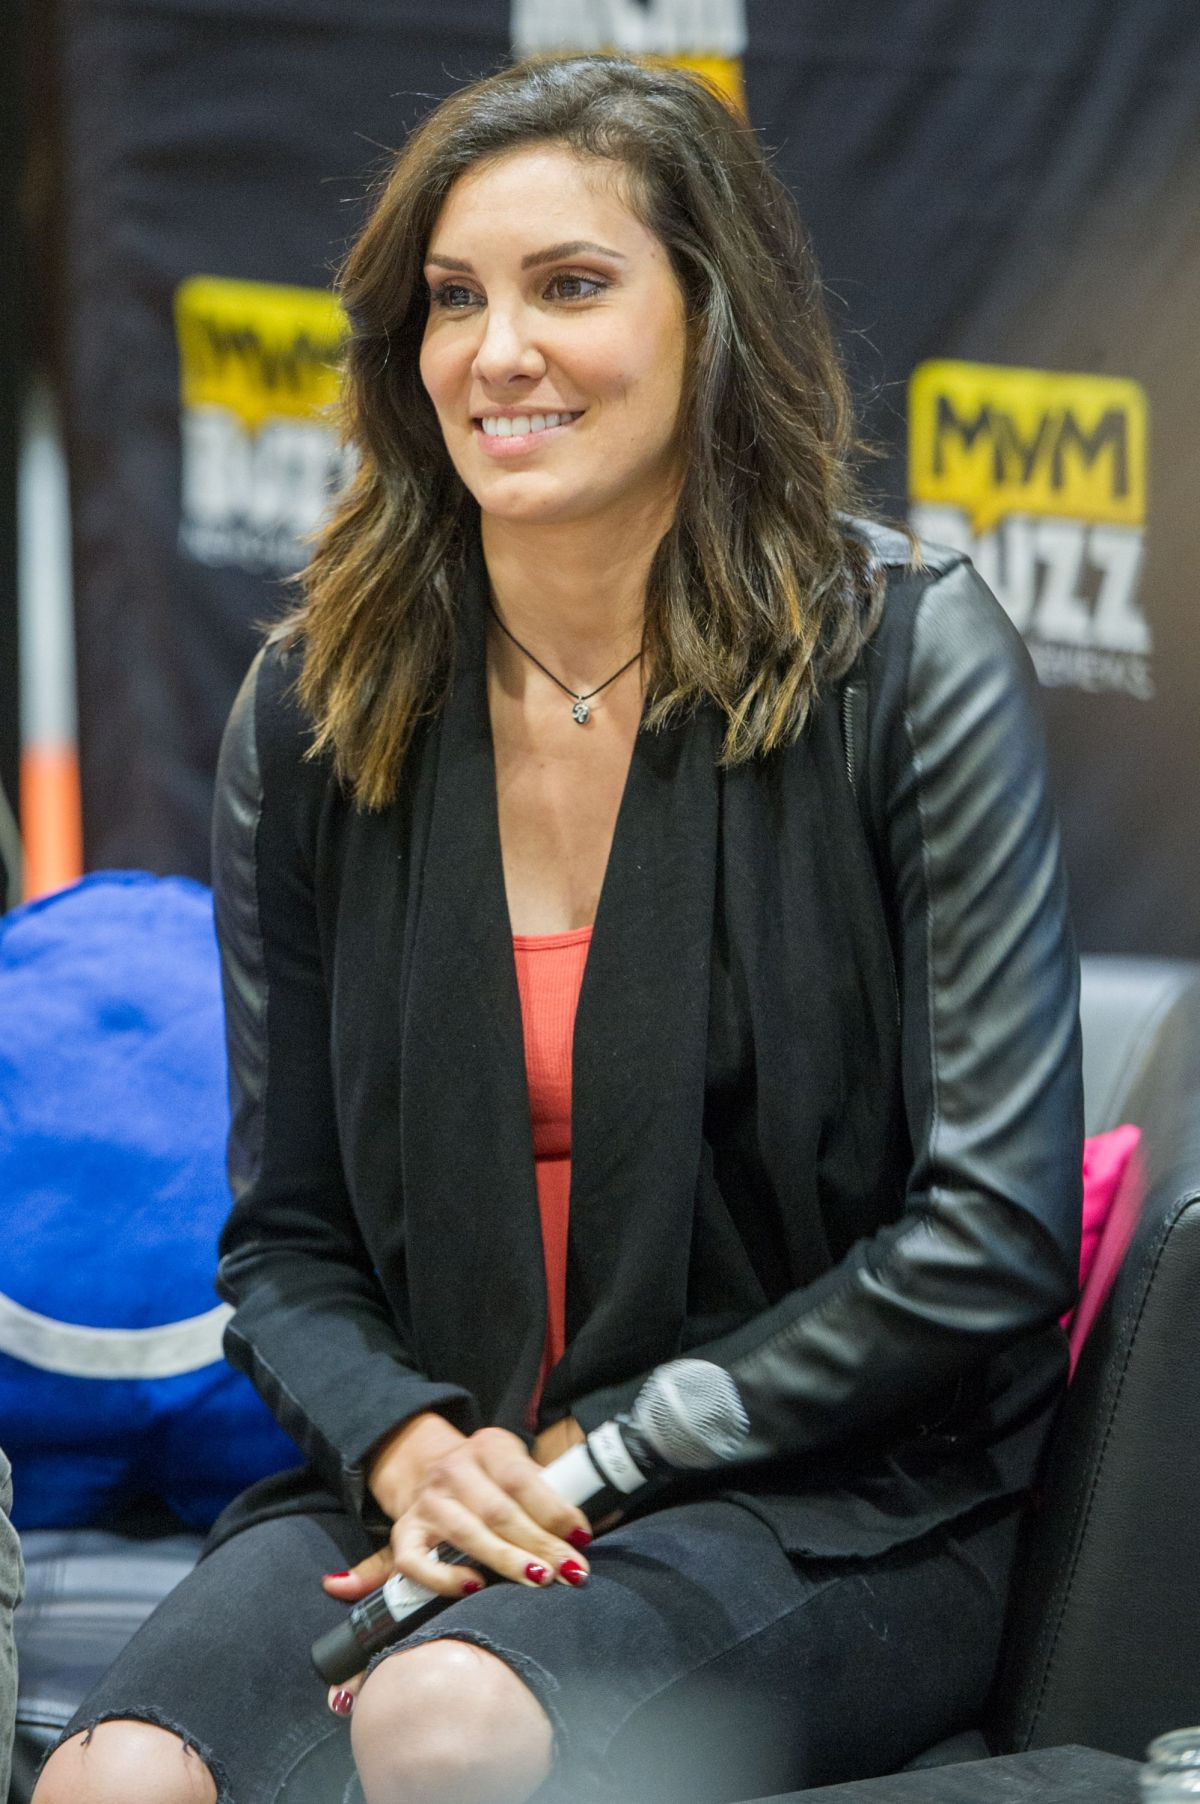 DANIELA RUAH at London Comic-con 05/28/2016